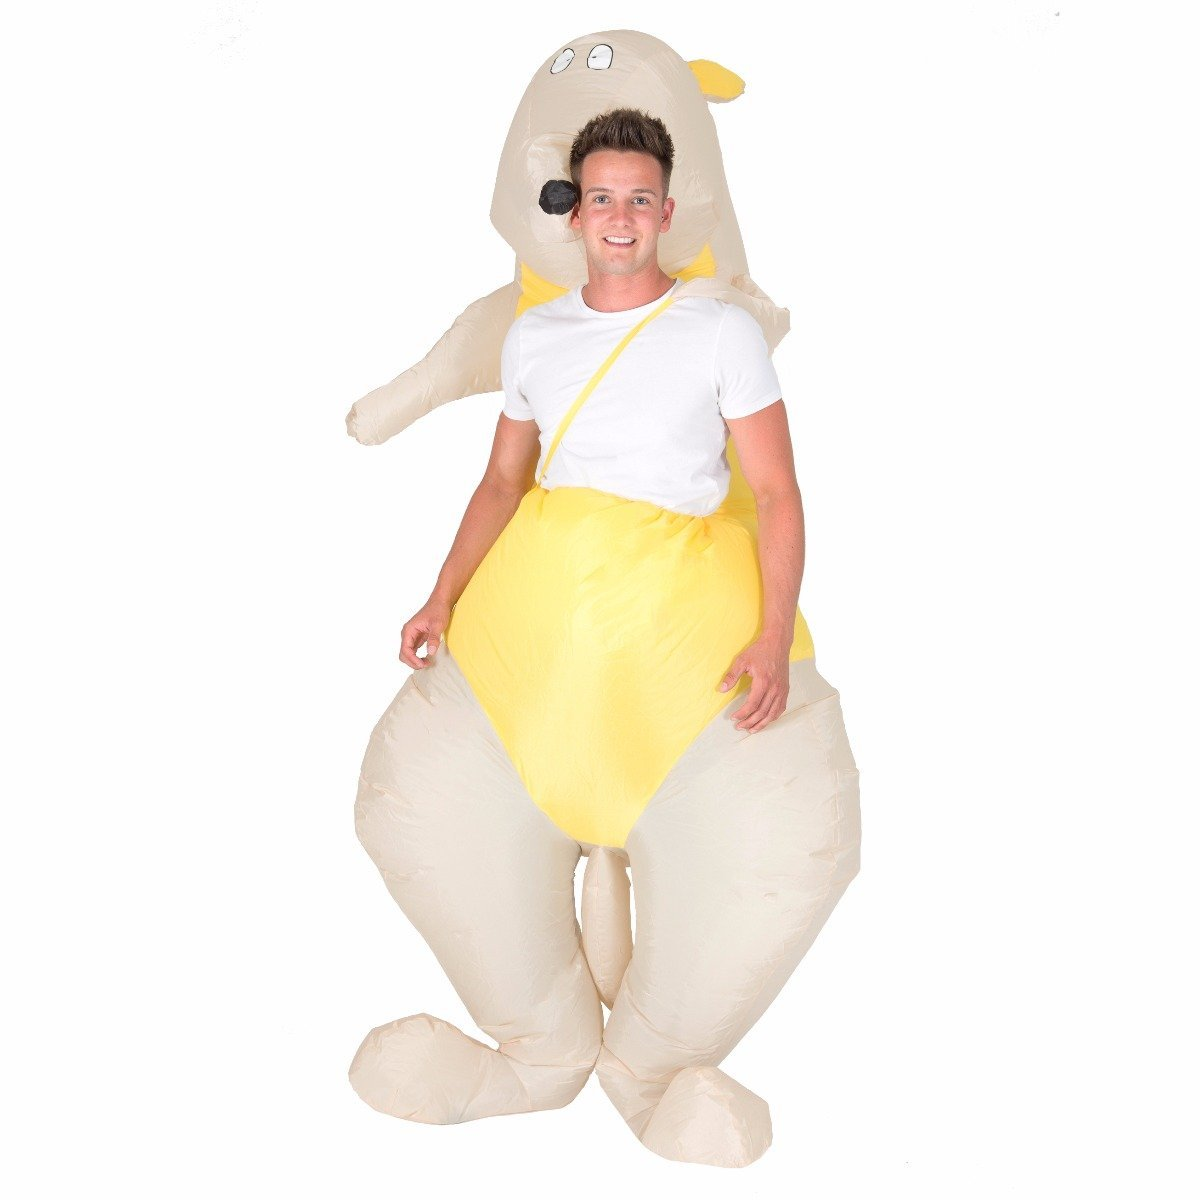 Bodysocks - Inflatable Kangaroo Costume